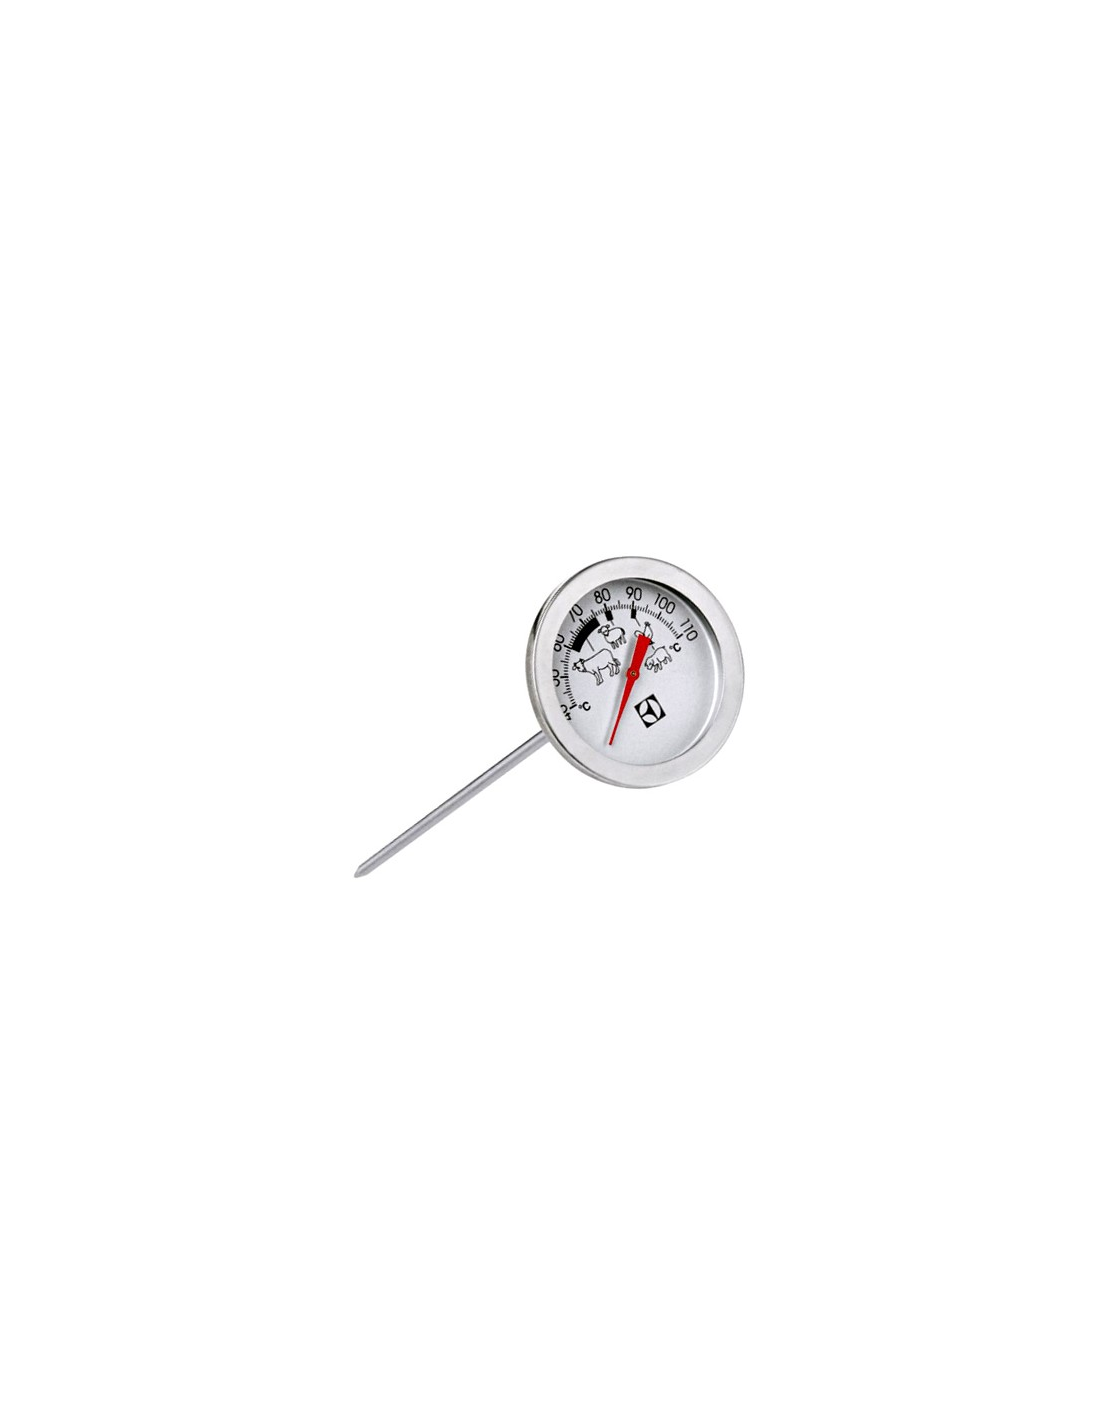 Thermometer E4TAM01 for Meat  861e4967f7a3c